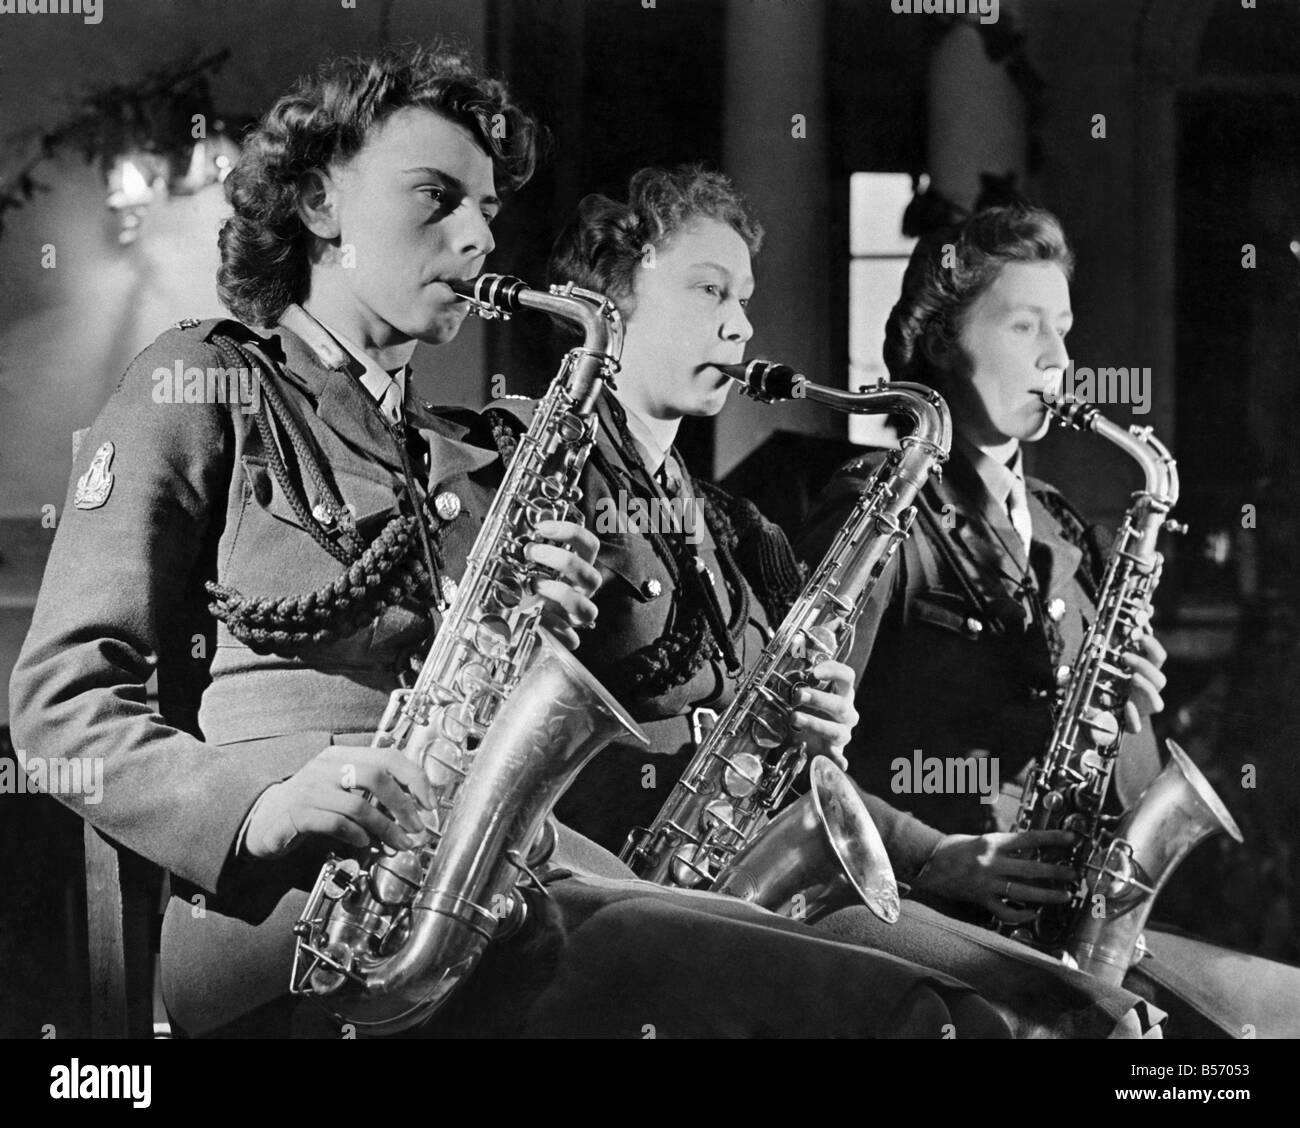 World War II Women. Three times the Sax. Three Sax players from the ATS dance band seen here performing. January - Stock Image